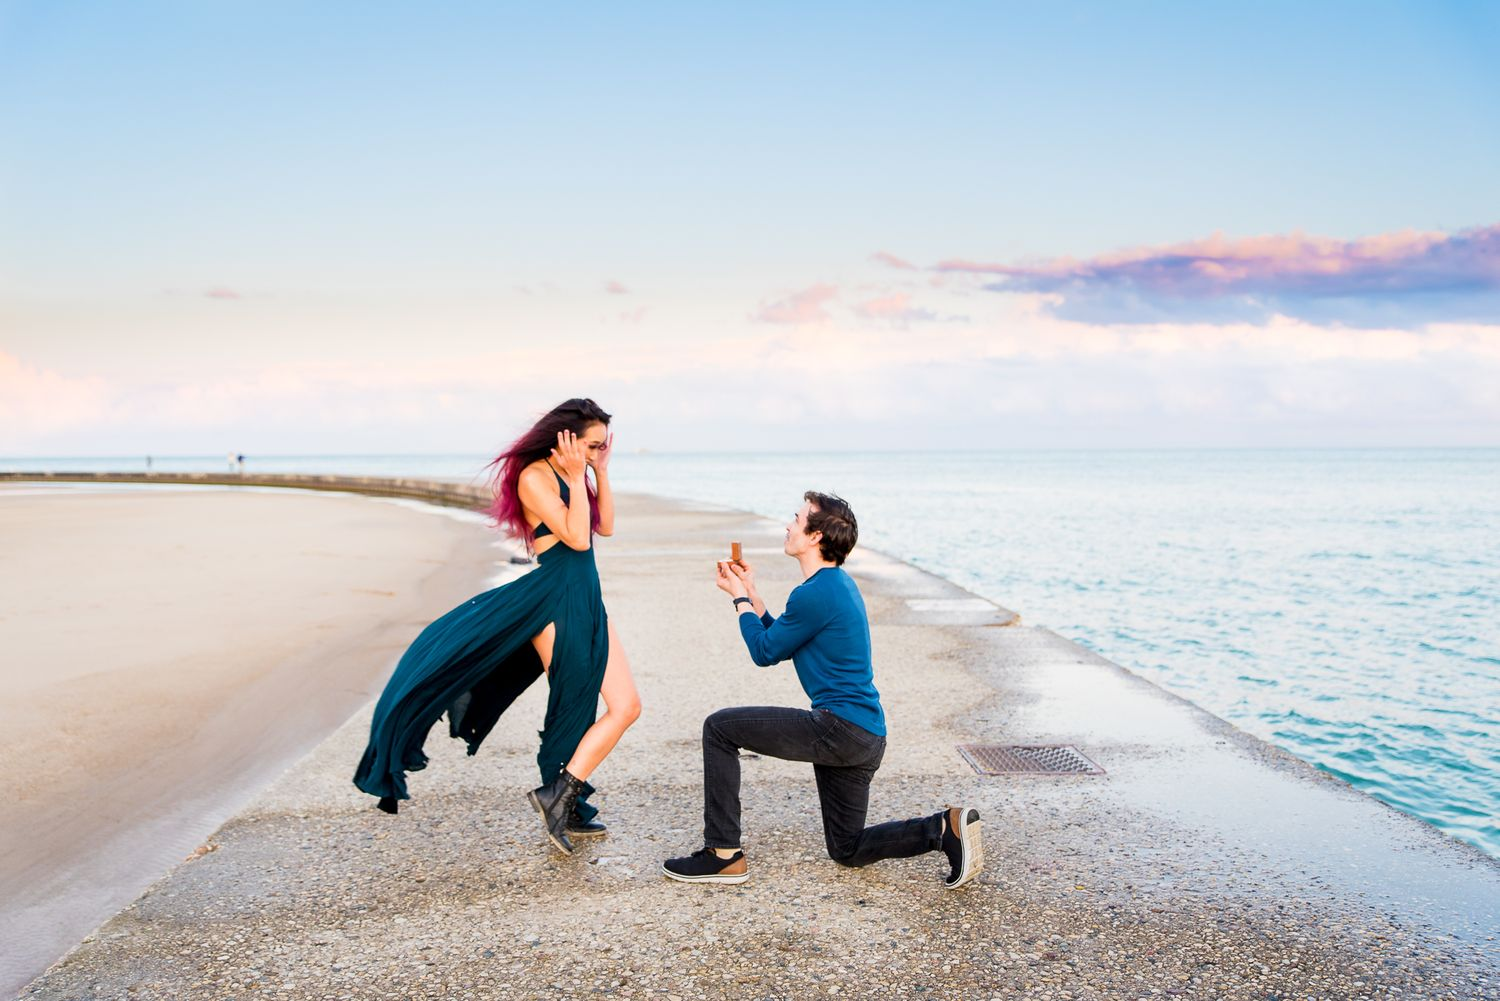 woman has hands on her face and is shocked to see boyfriend on one knee proposing